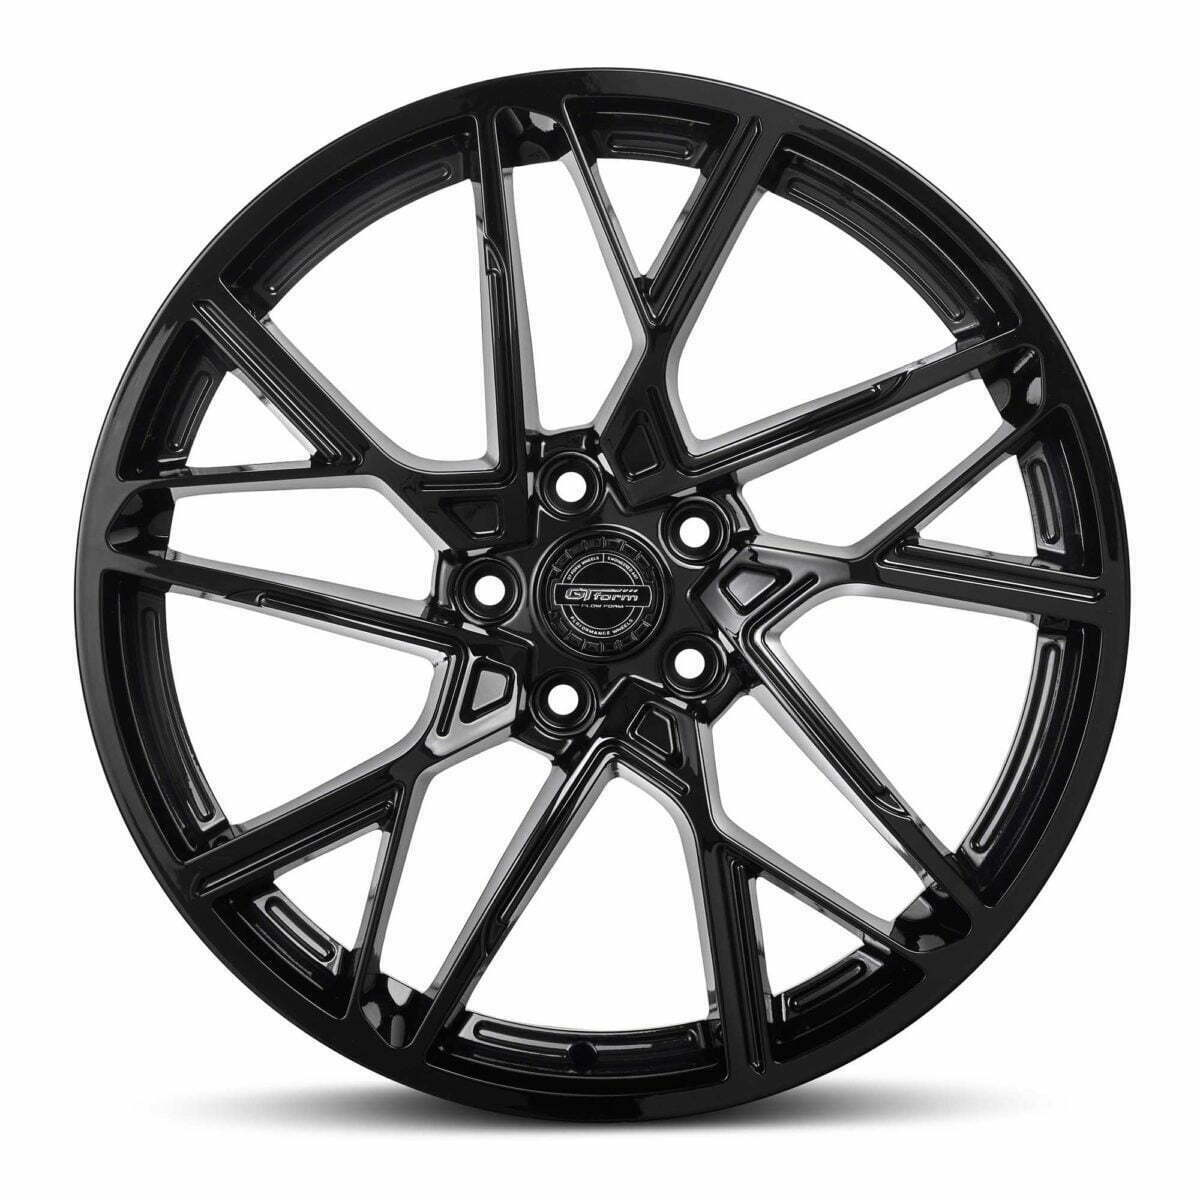 GT form Interflow Gloss Black Wheels Performance Rims